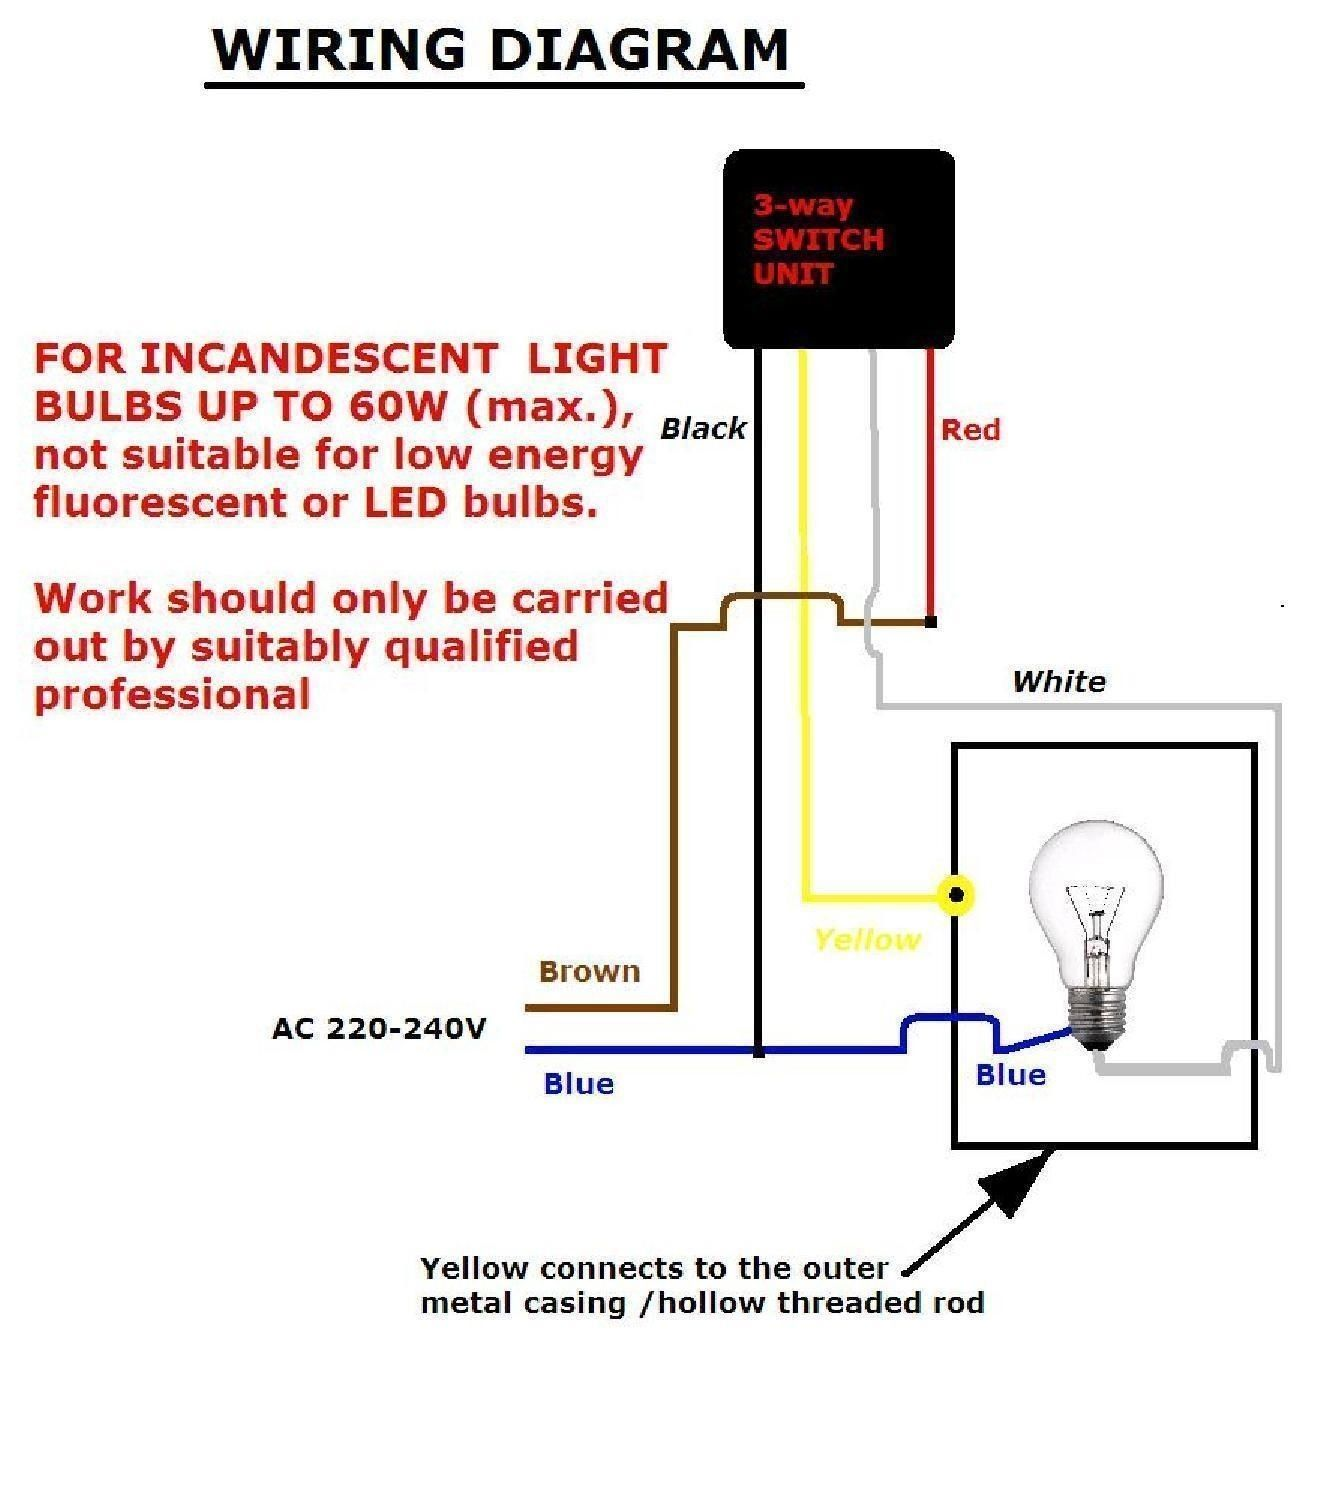 Lovely Wiring Diagram for Lights and Switches diagrams